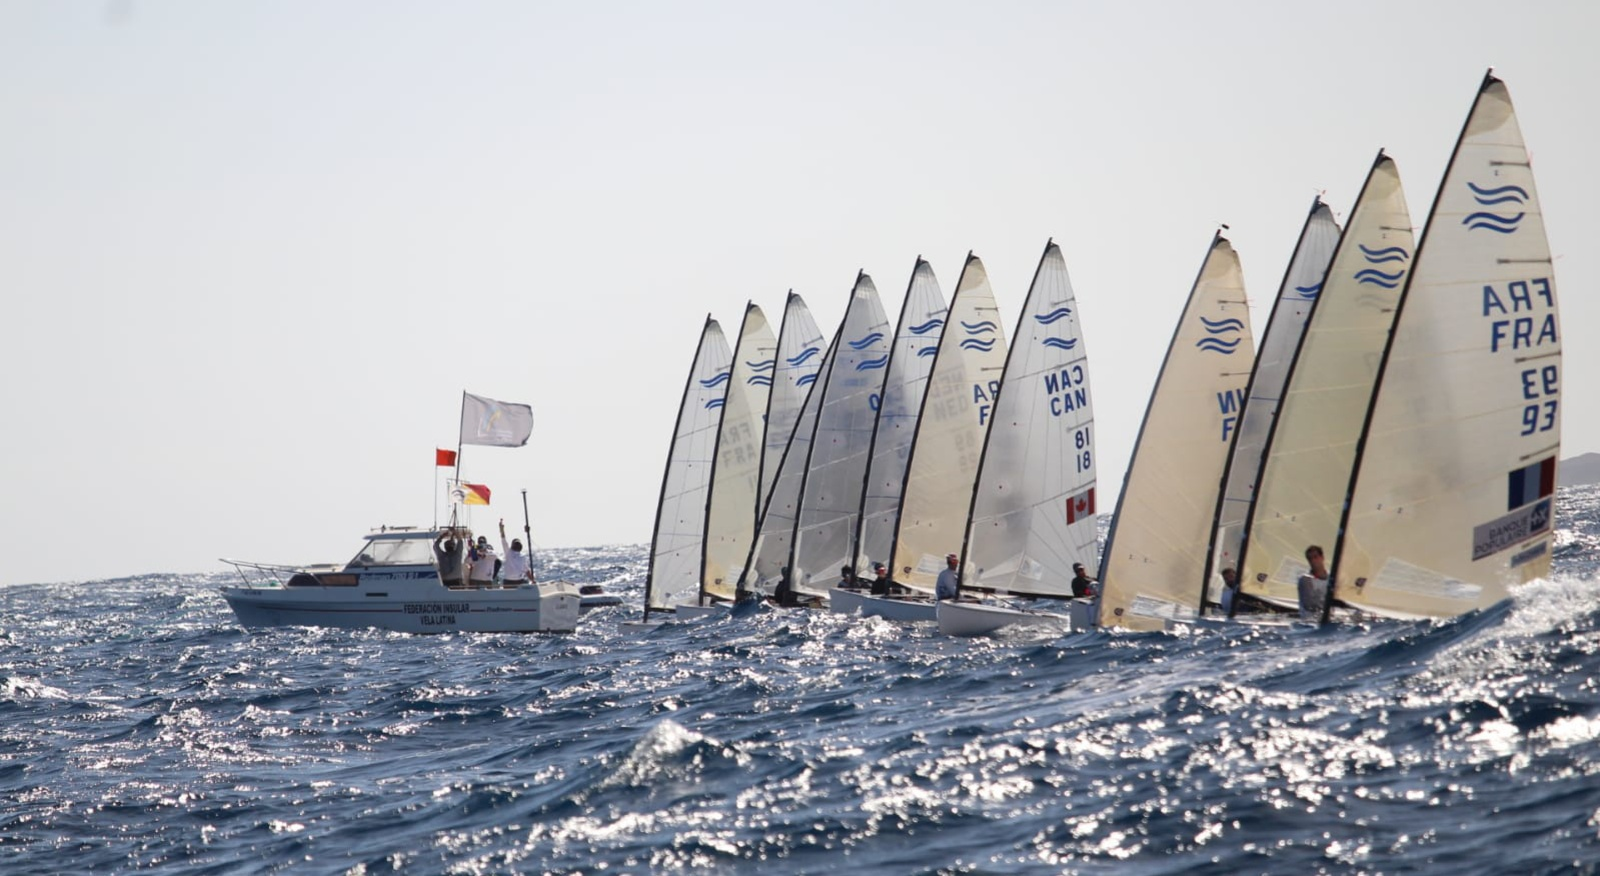 Winners confirmed at 2021 Lanzarote Olympic Winter Regatta